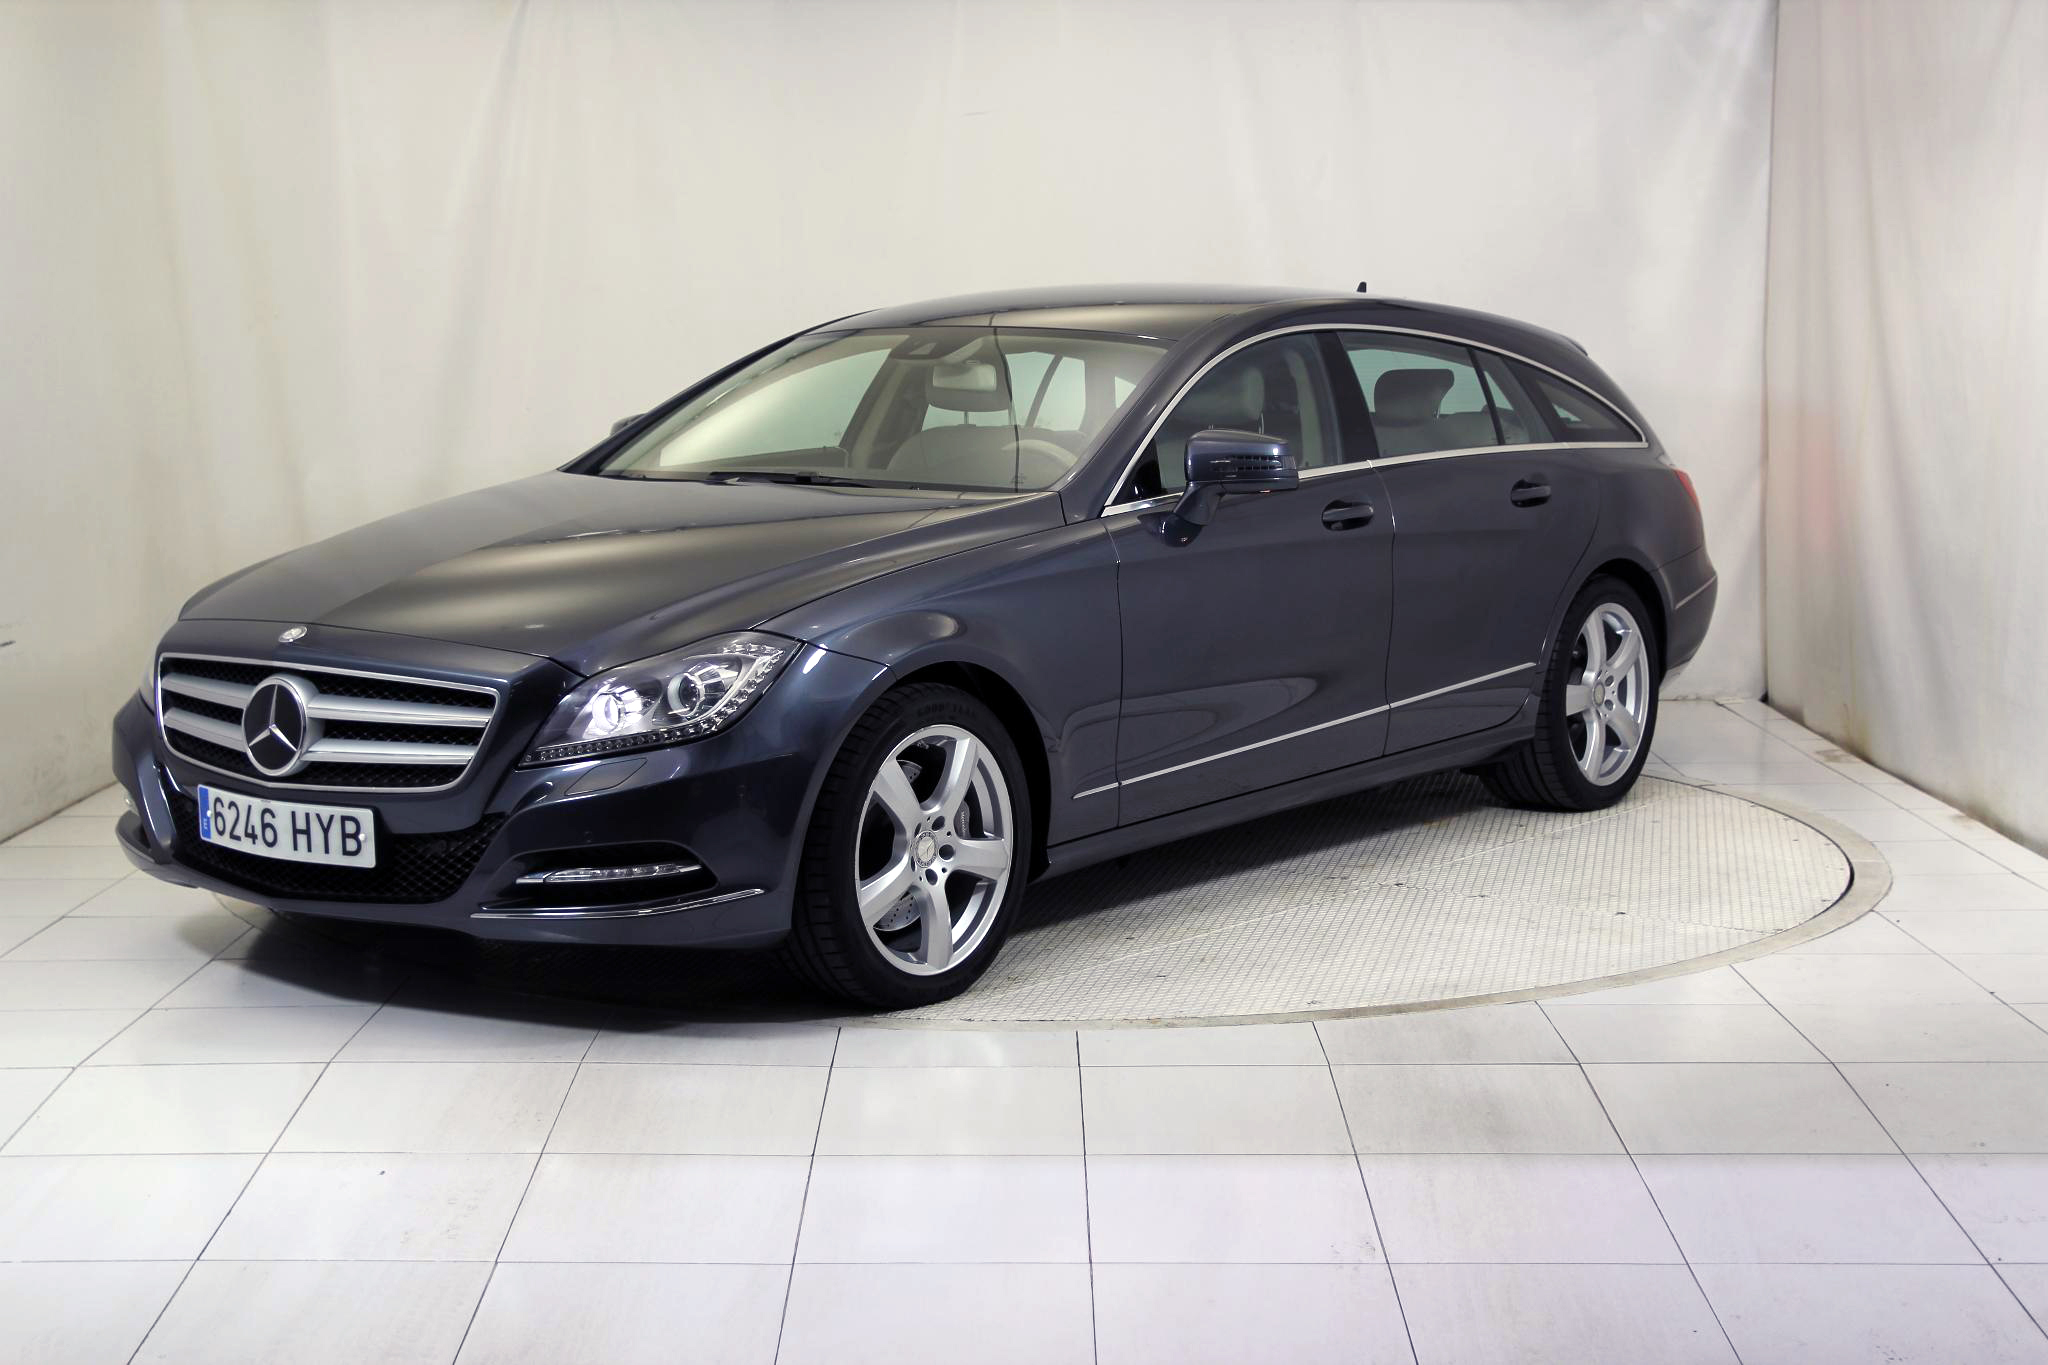 Mercedes-Benz Clase CLS CLS SHOOTING BRAKE 350 CDI AUTO imagen 1